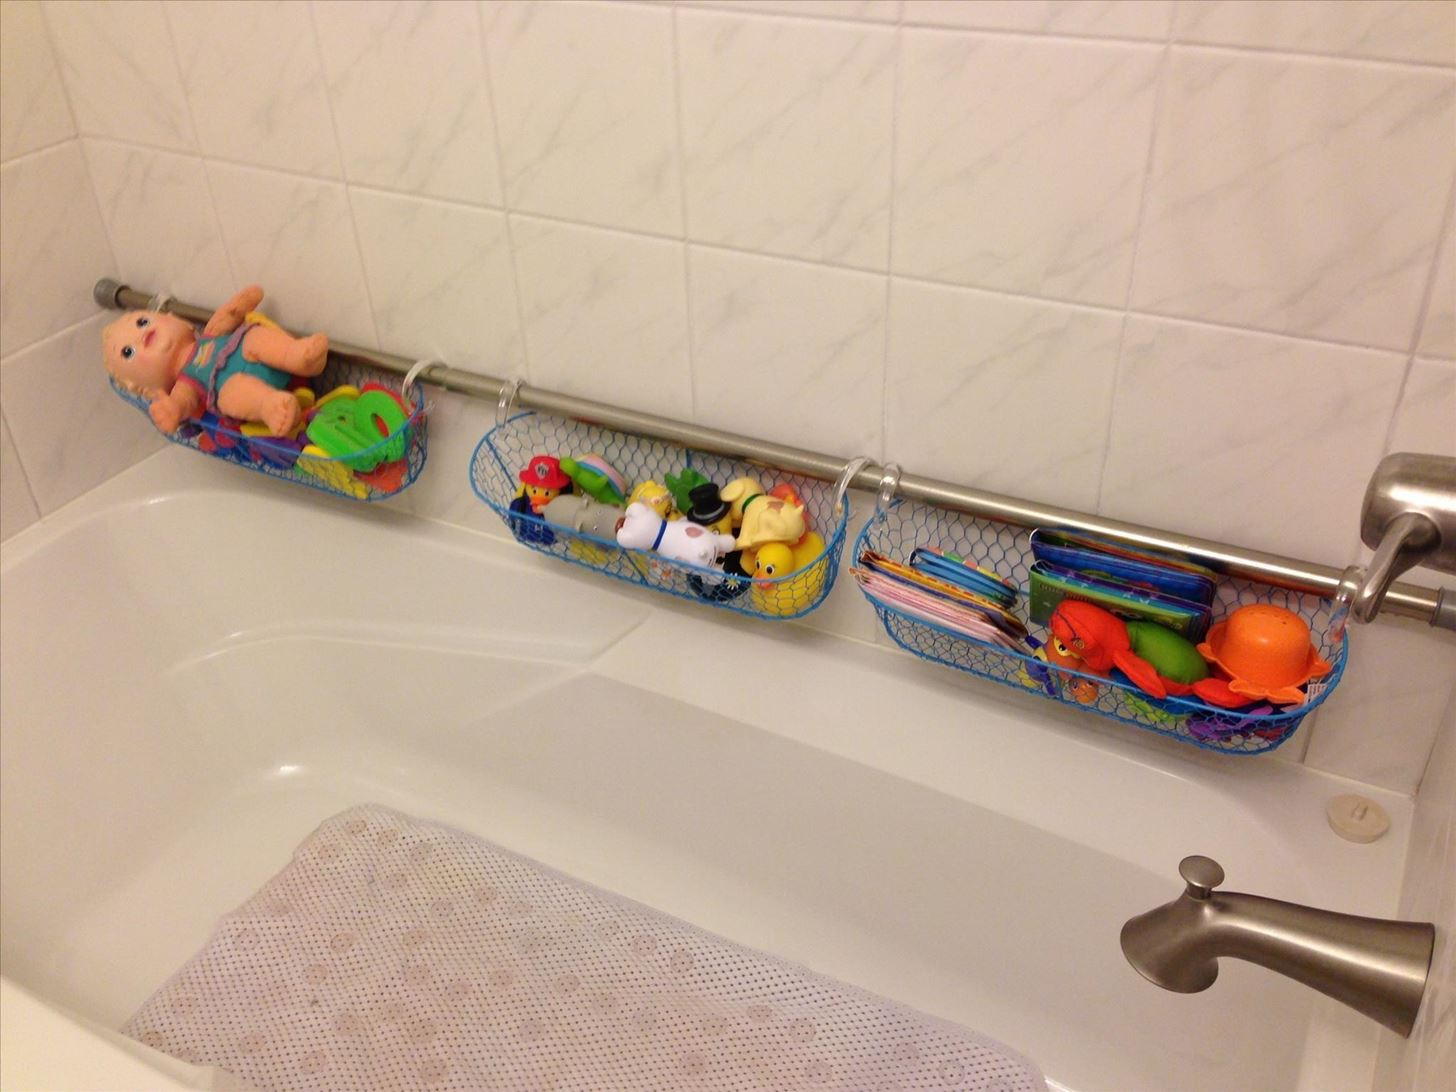 50 Nifty Dollar Store Hacks To Make Your Bathroom Organized